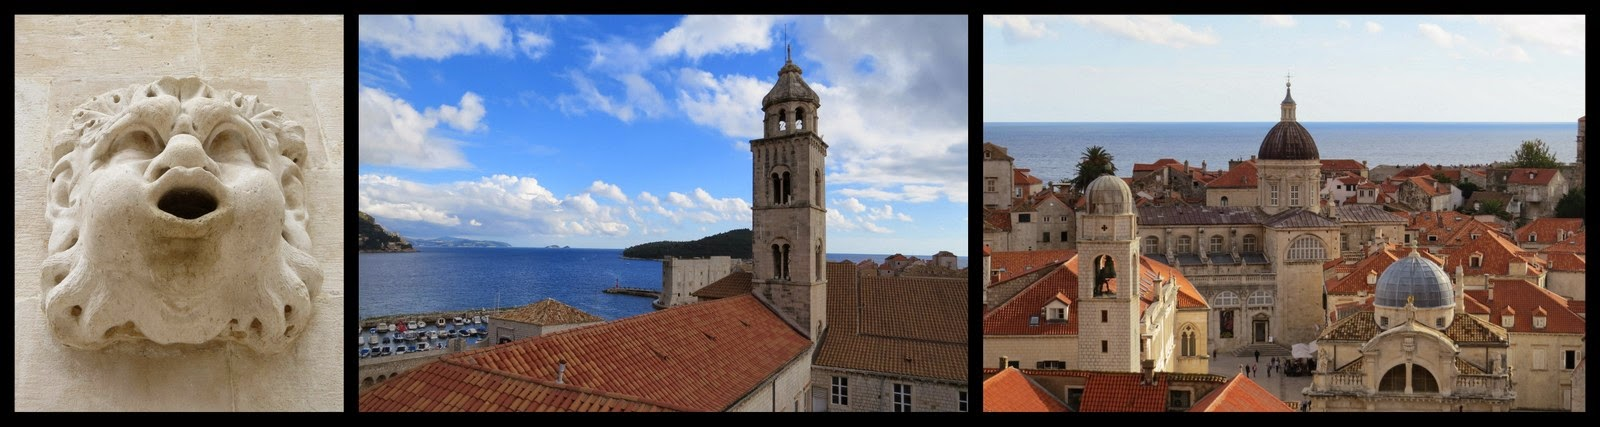 Ryanair Weekend Destination Ideas: Dubrovnik, Croatia in the Autumn Shoulder Season